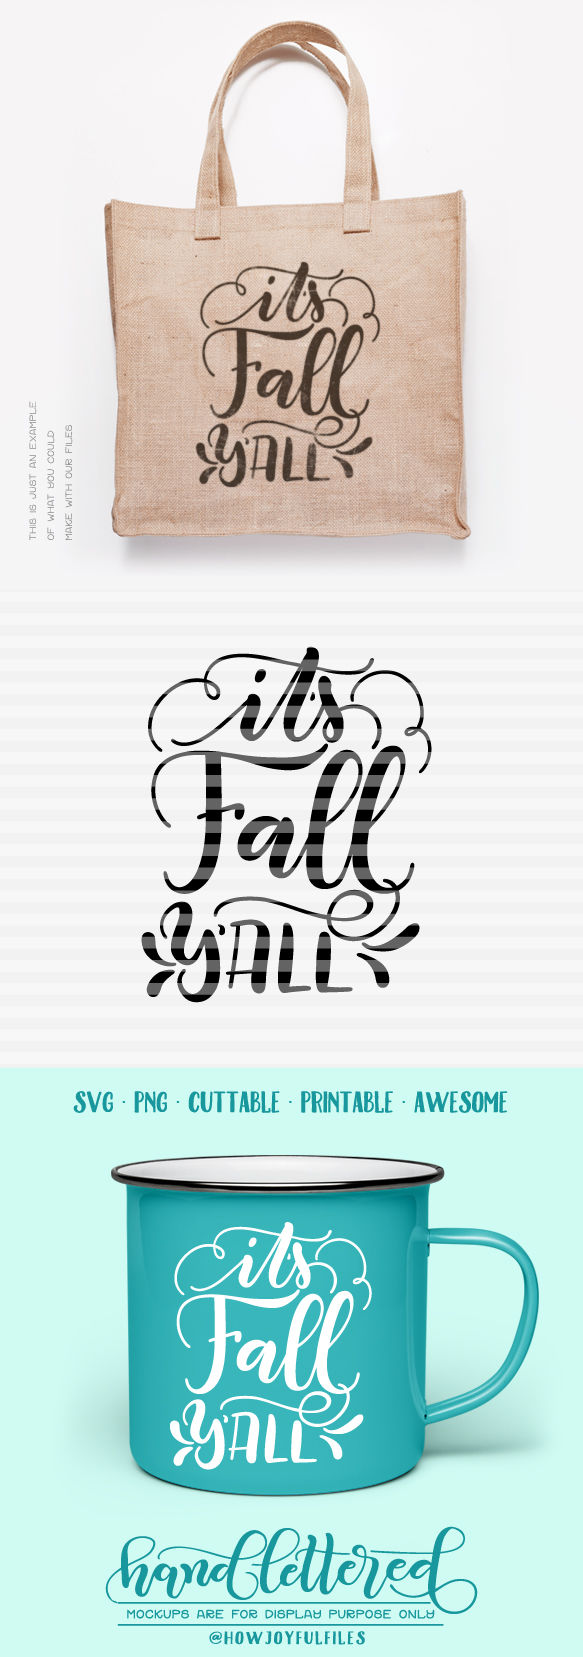 It S Fall Y All Autumn Fall Svg Dxf Pdf Files Hand Drawn Lettered Cut File Graphic Overlay By Howjoyful Files Thehungryjpeg Com